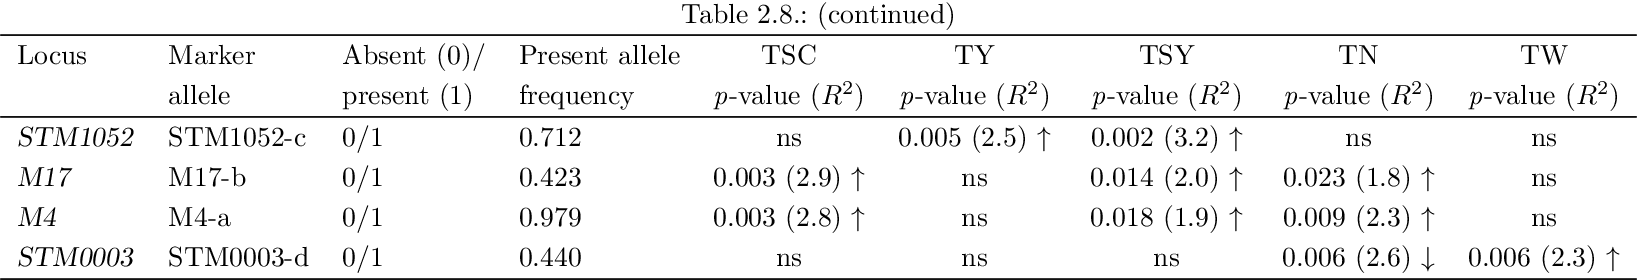 Table 2.8.: (continued)